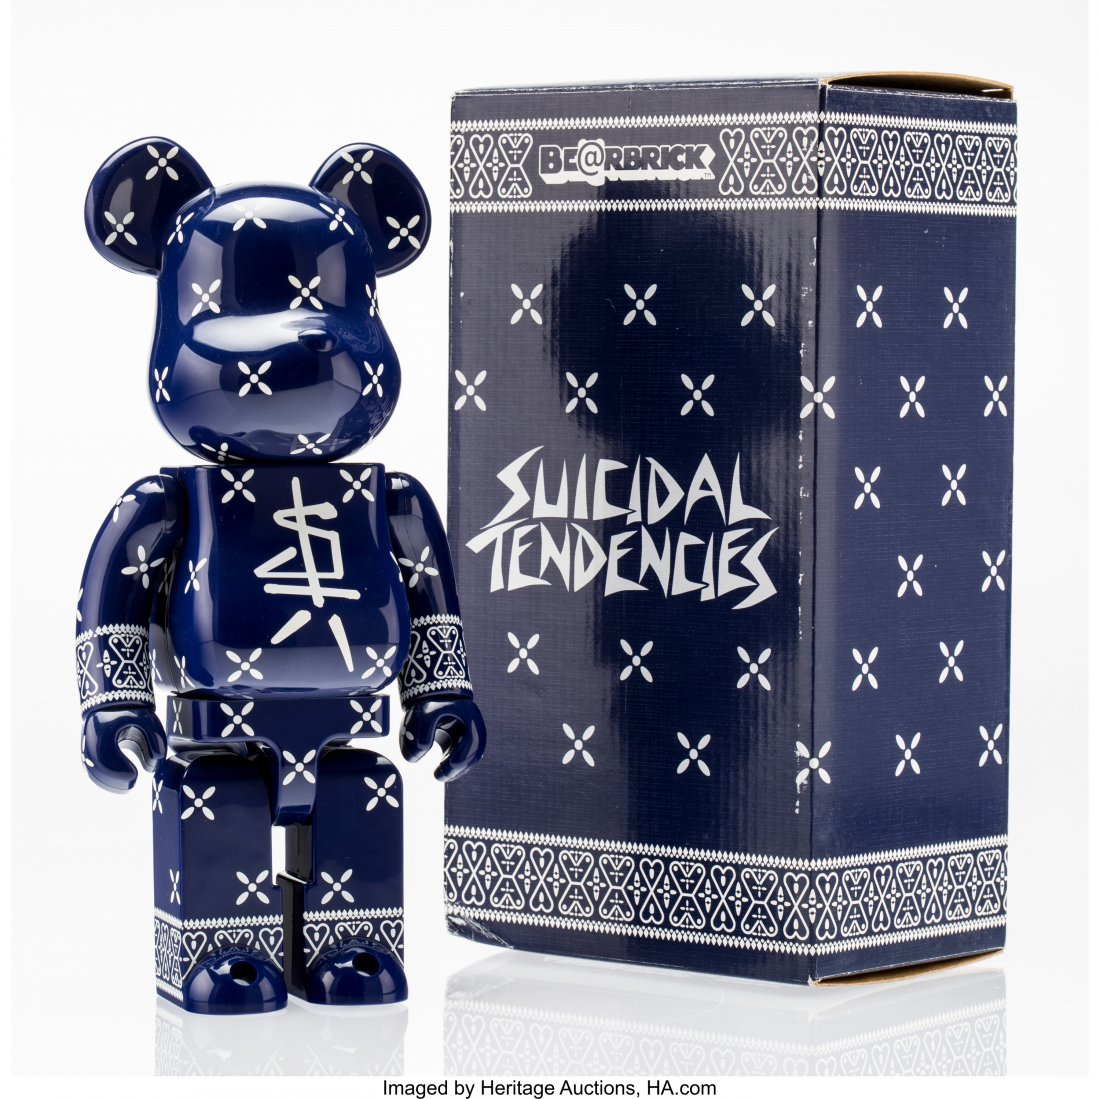 11191: BE@RBRICK X Suicidal Tendencies Suicidal Tendenc